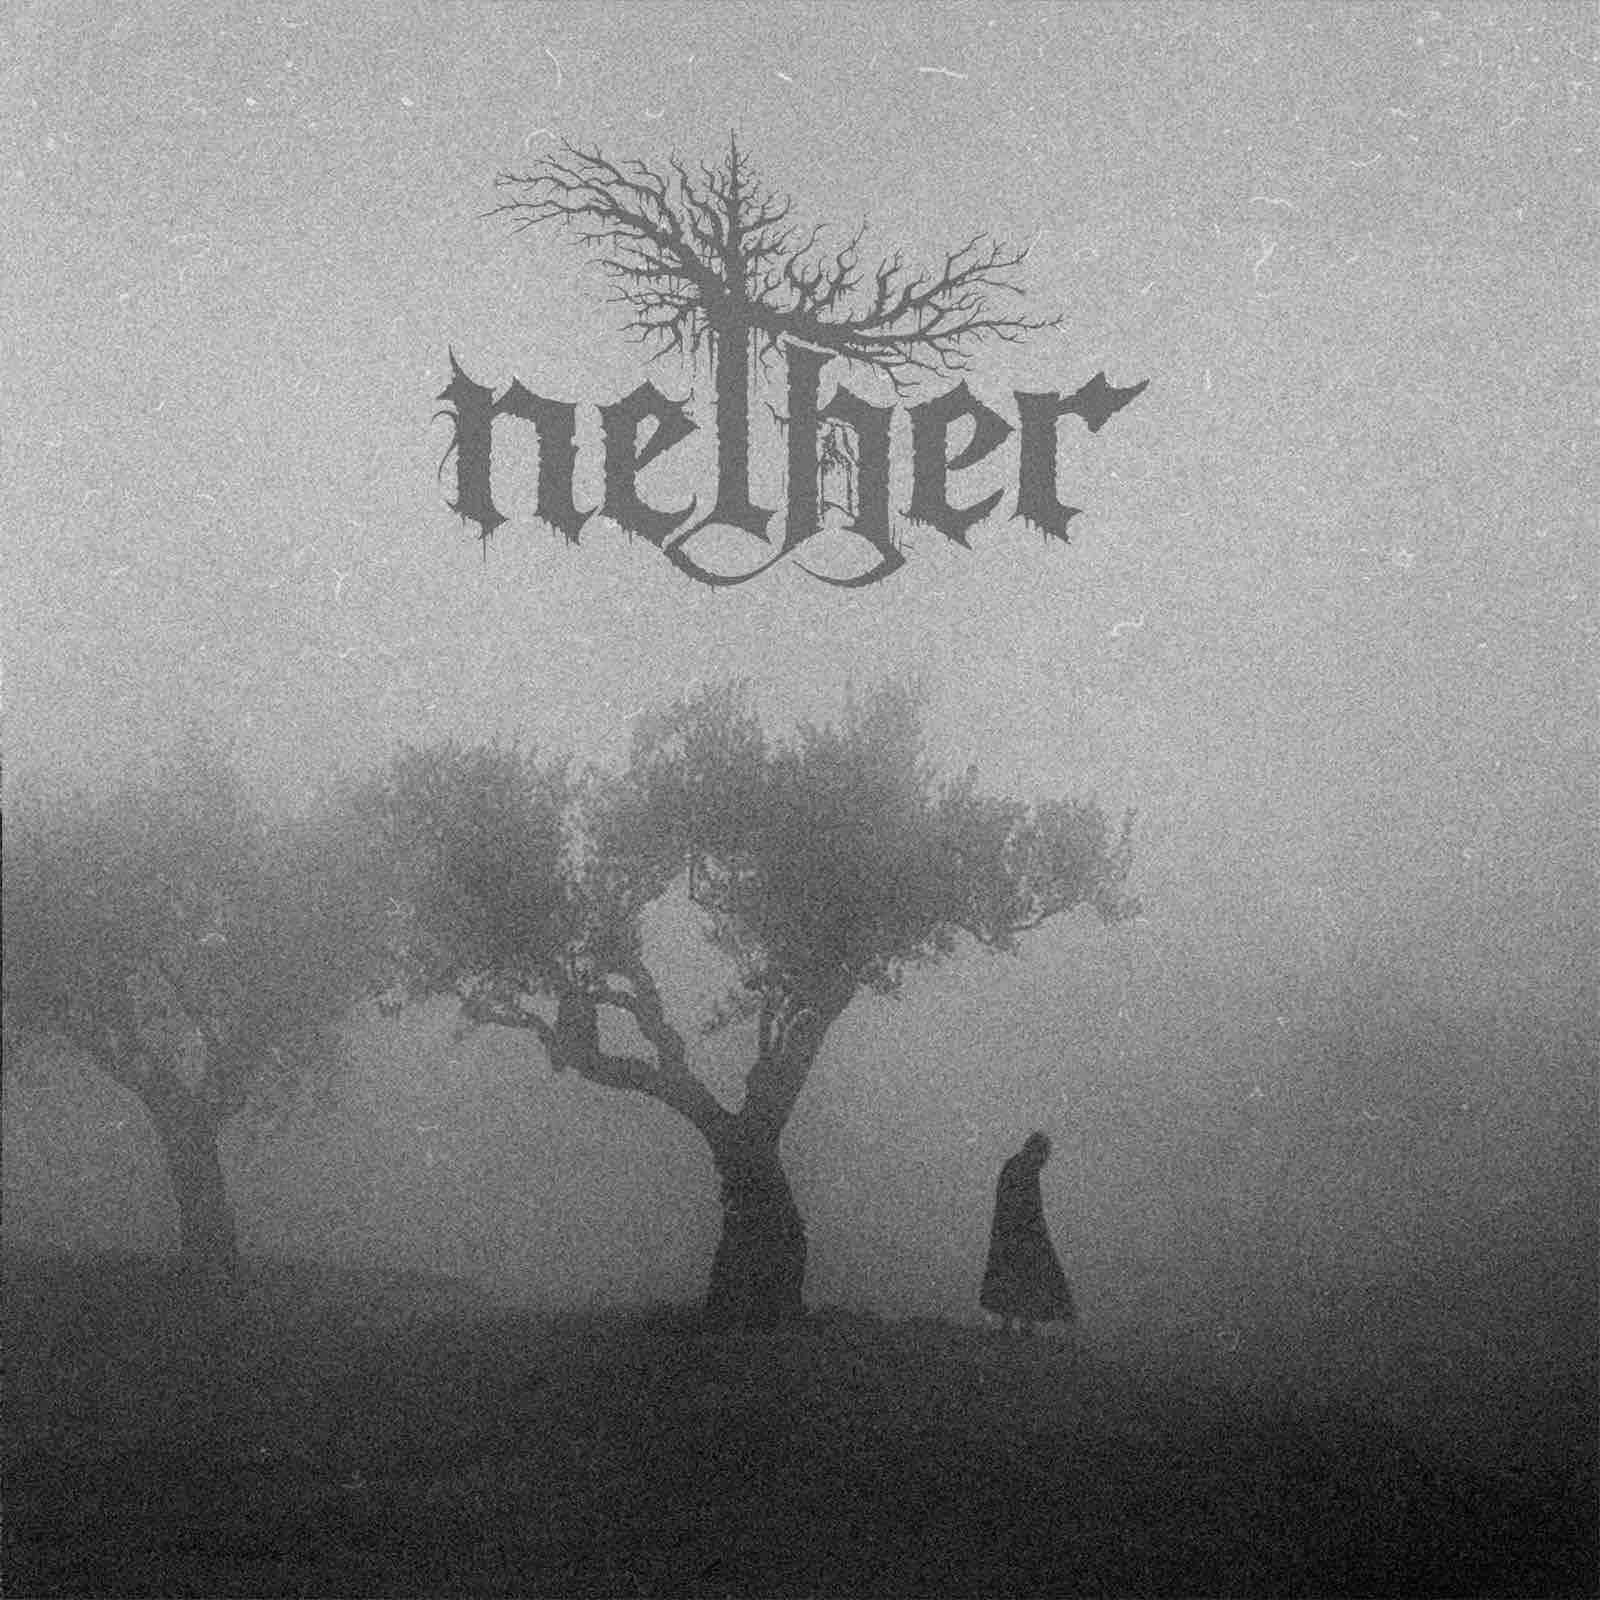 Nether Between Shades and Shadows